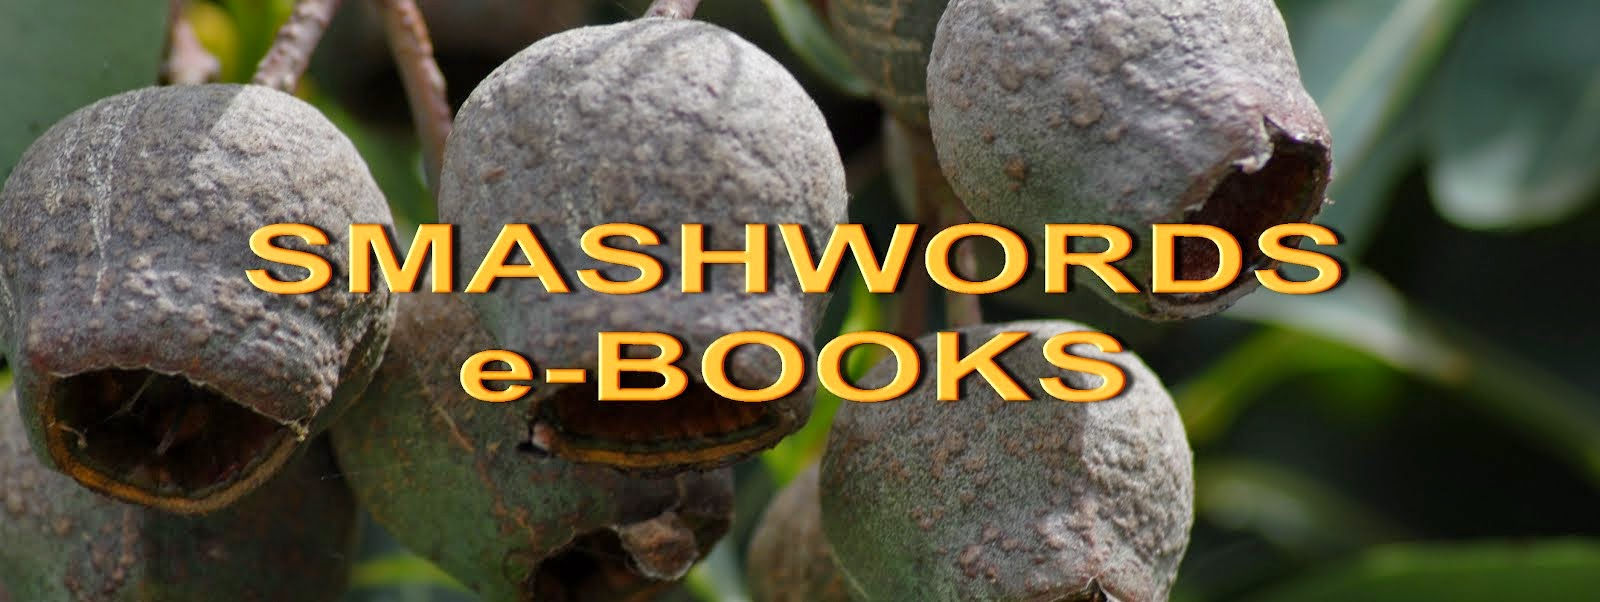 SMASHWORDS e-BOOKS